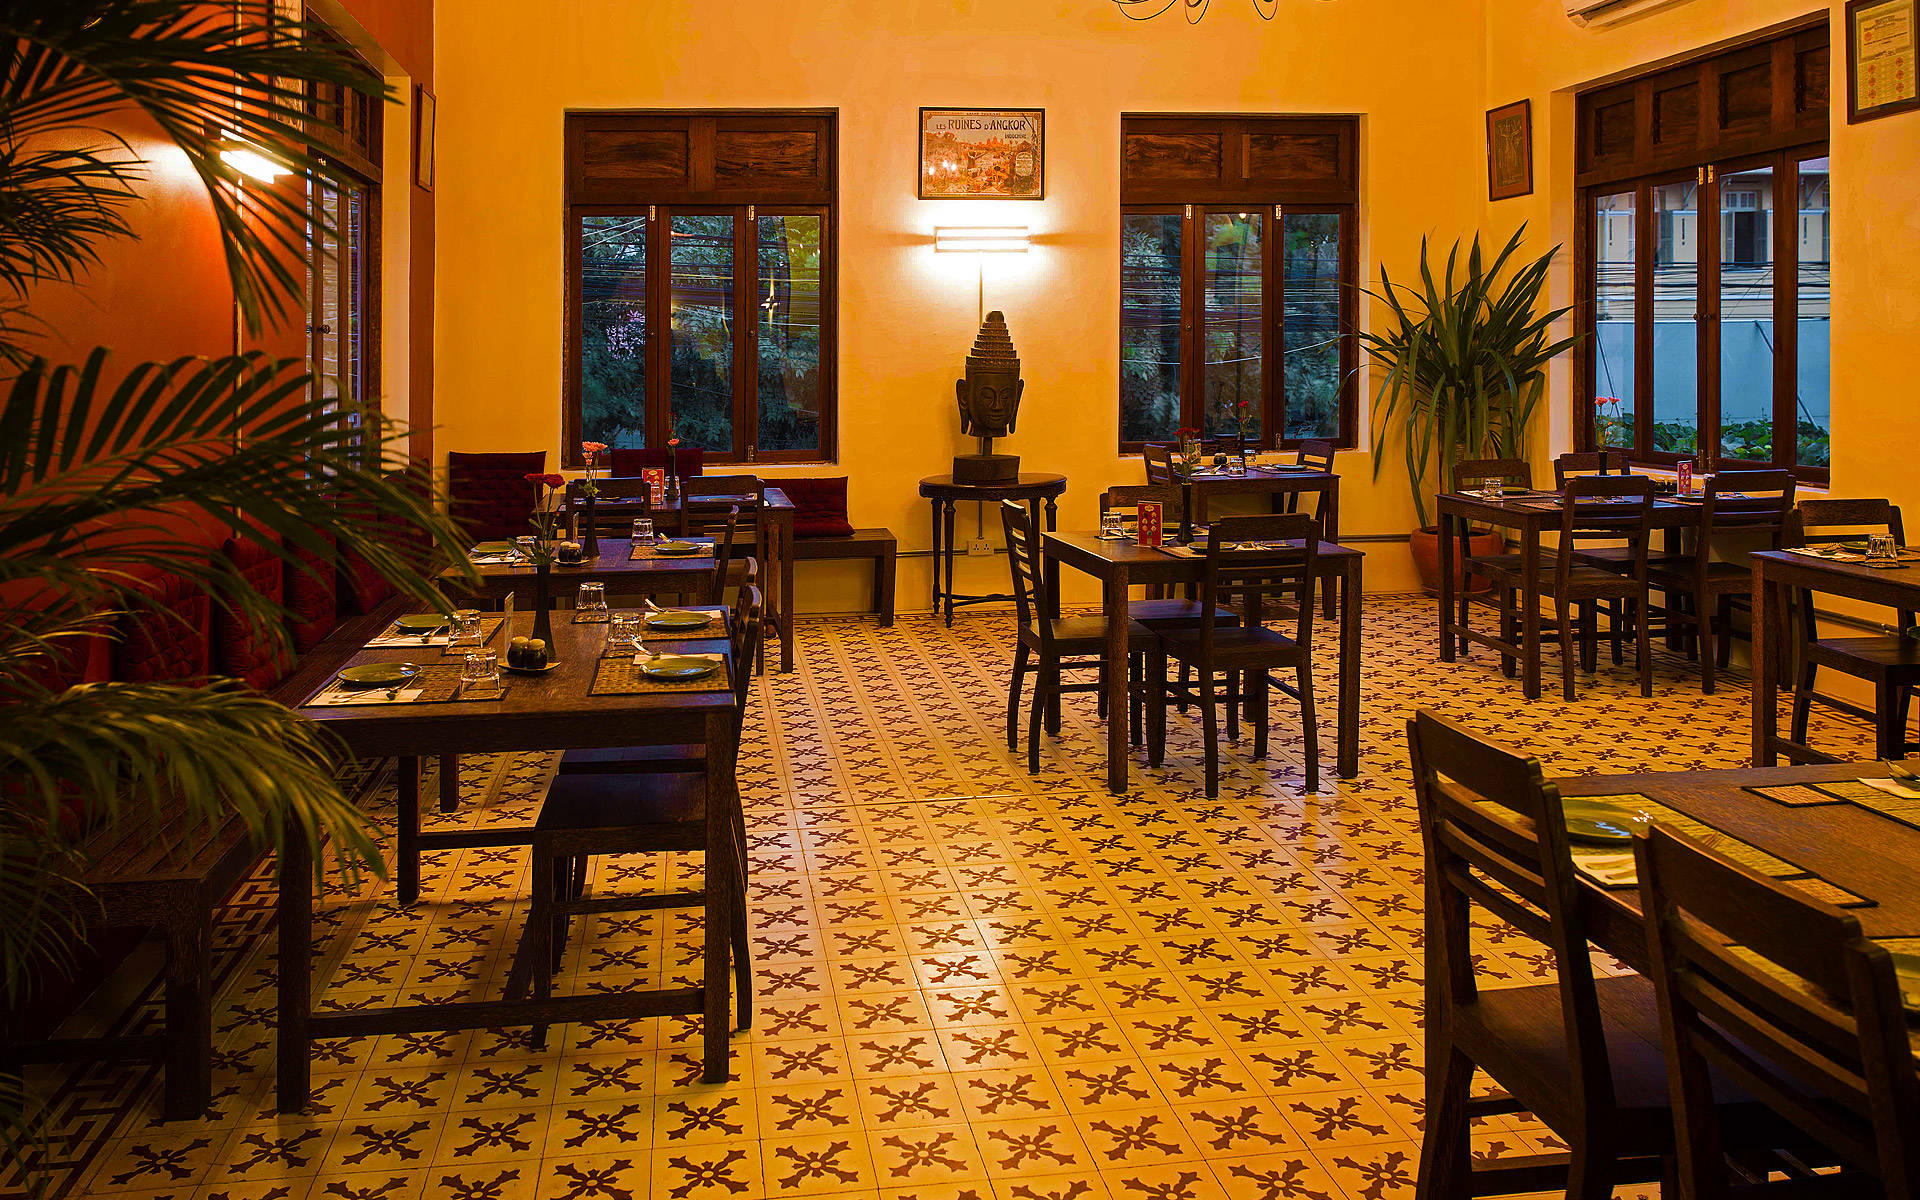 The Sugar Palm Restaurant & Bar. Authentic Cambodian food by chef Kethana with locations in Phnom Penh & Siem Reap, Cambodia.